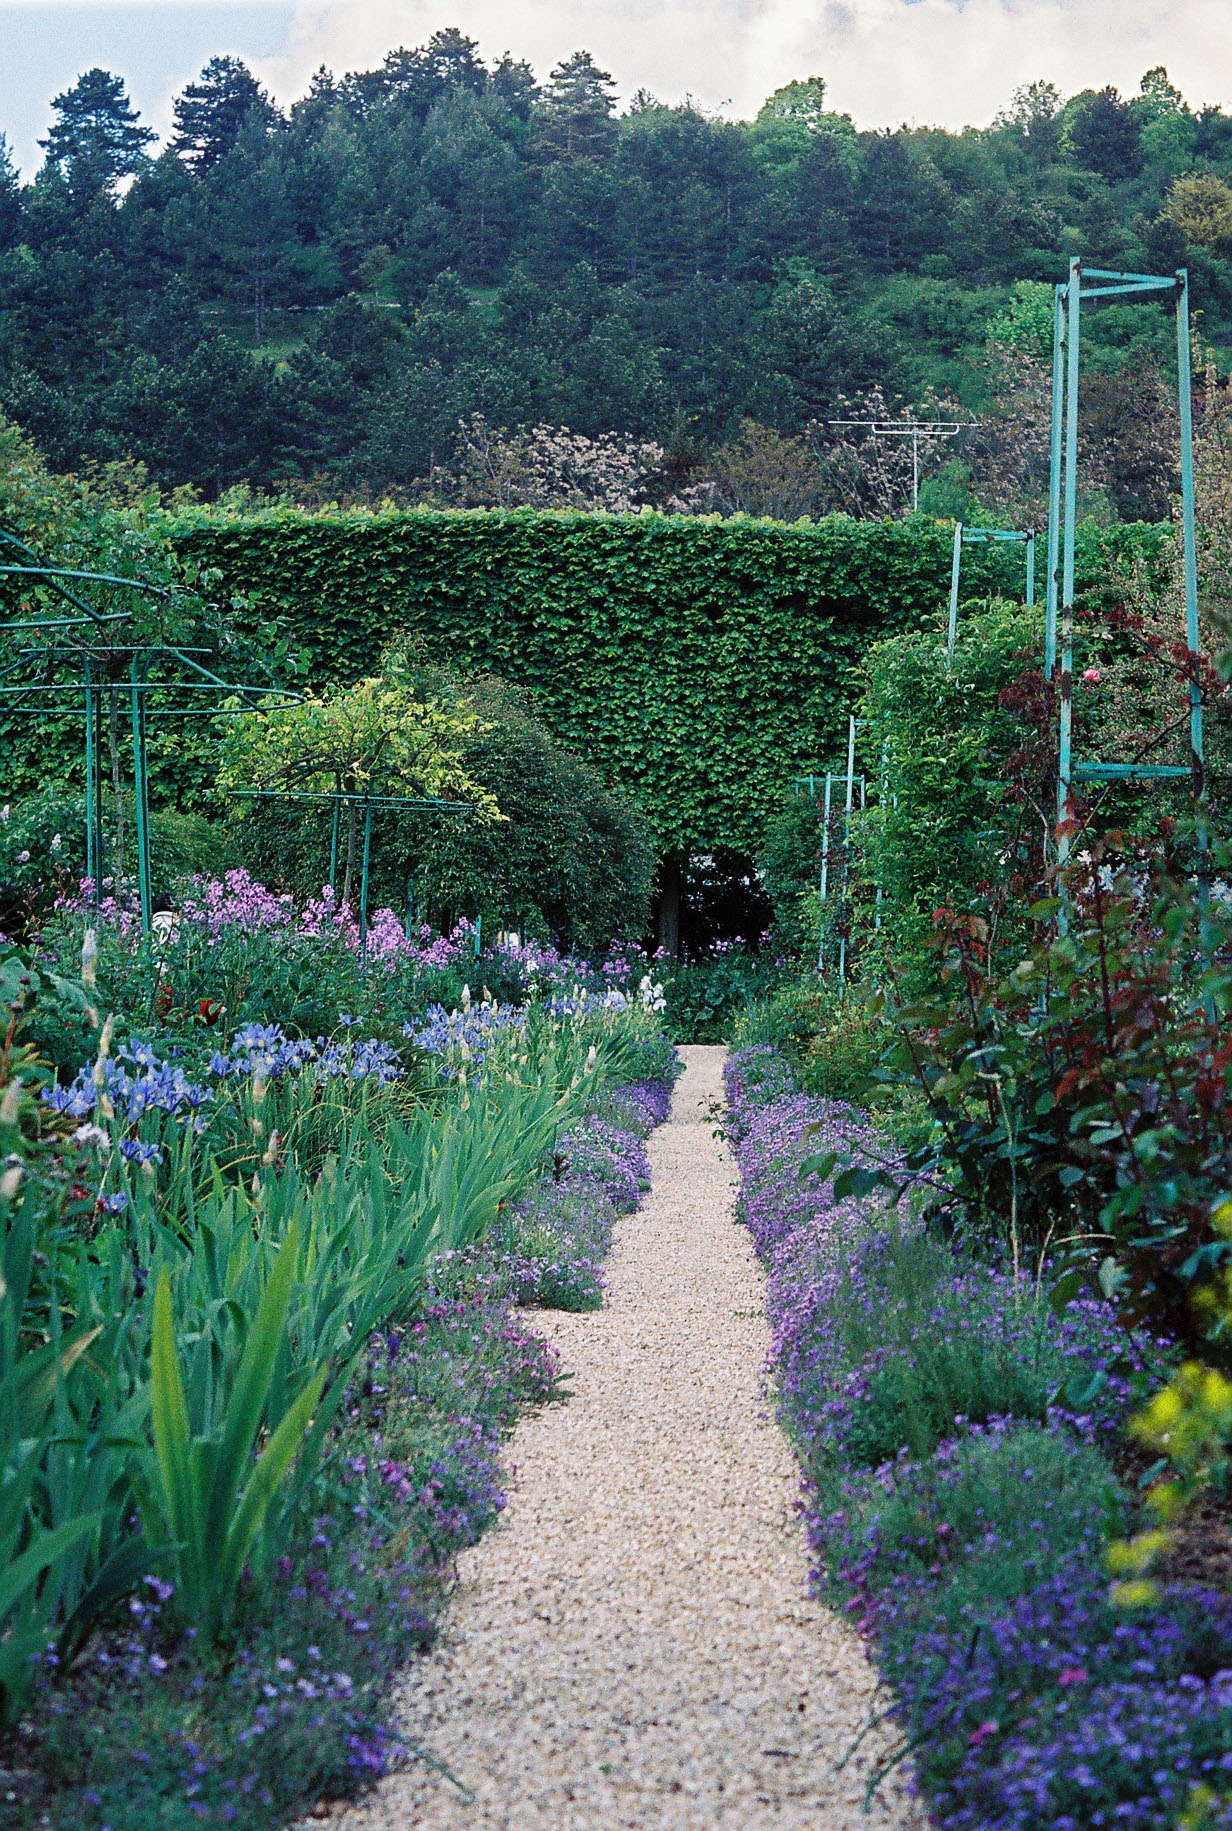 Travel to Claude Monet home or Chateau garden pathways in Giverny France 01